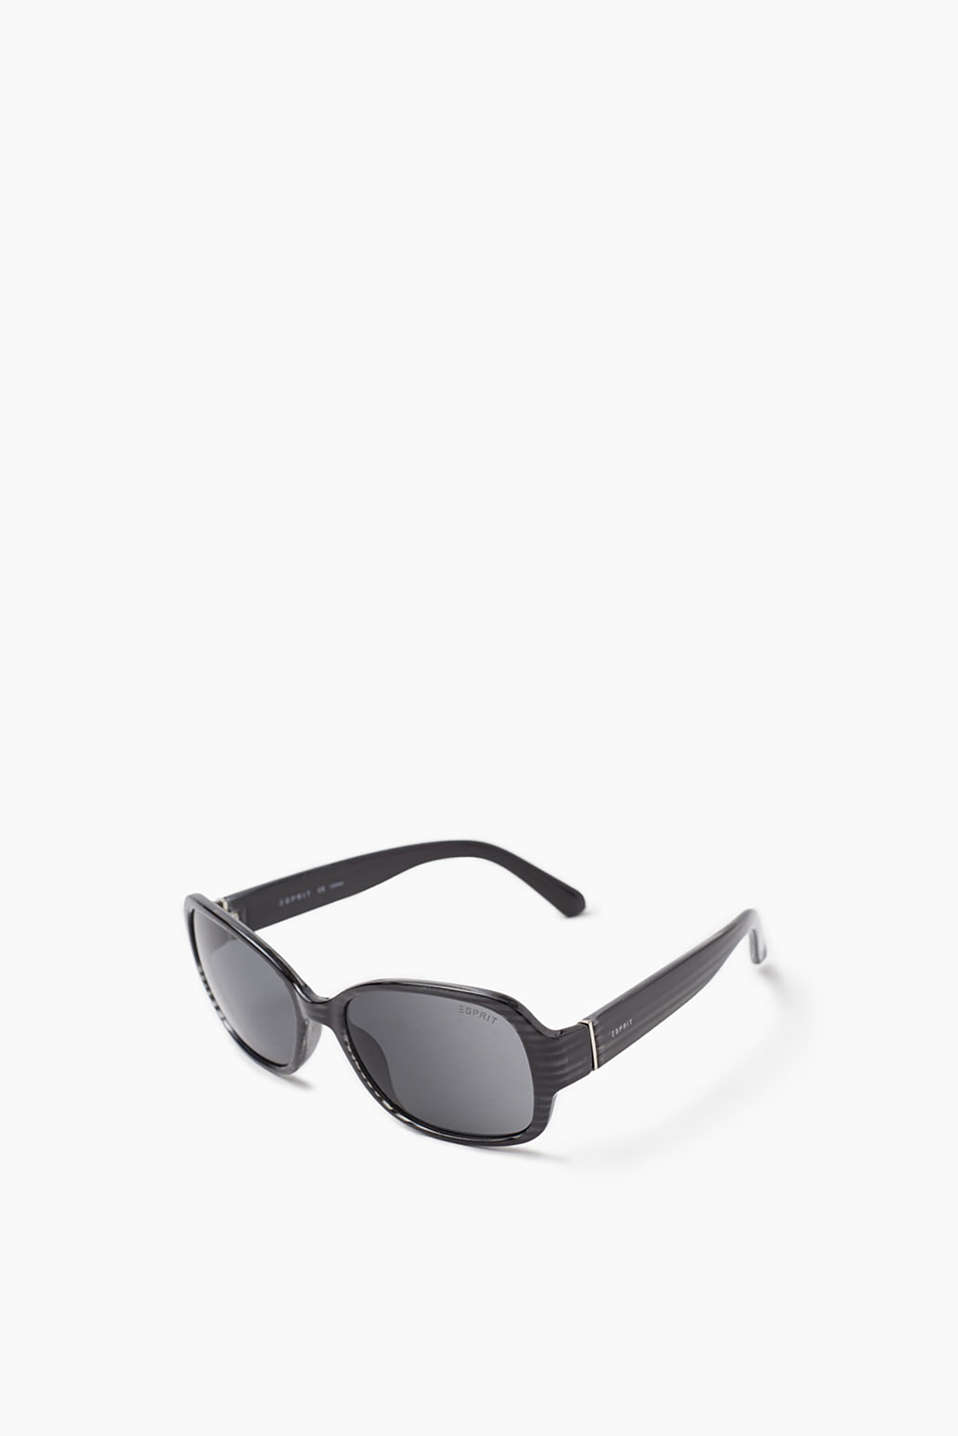 Rectangular sunglasses with rounded corners, in plastic